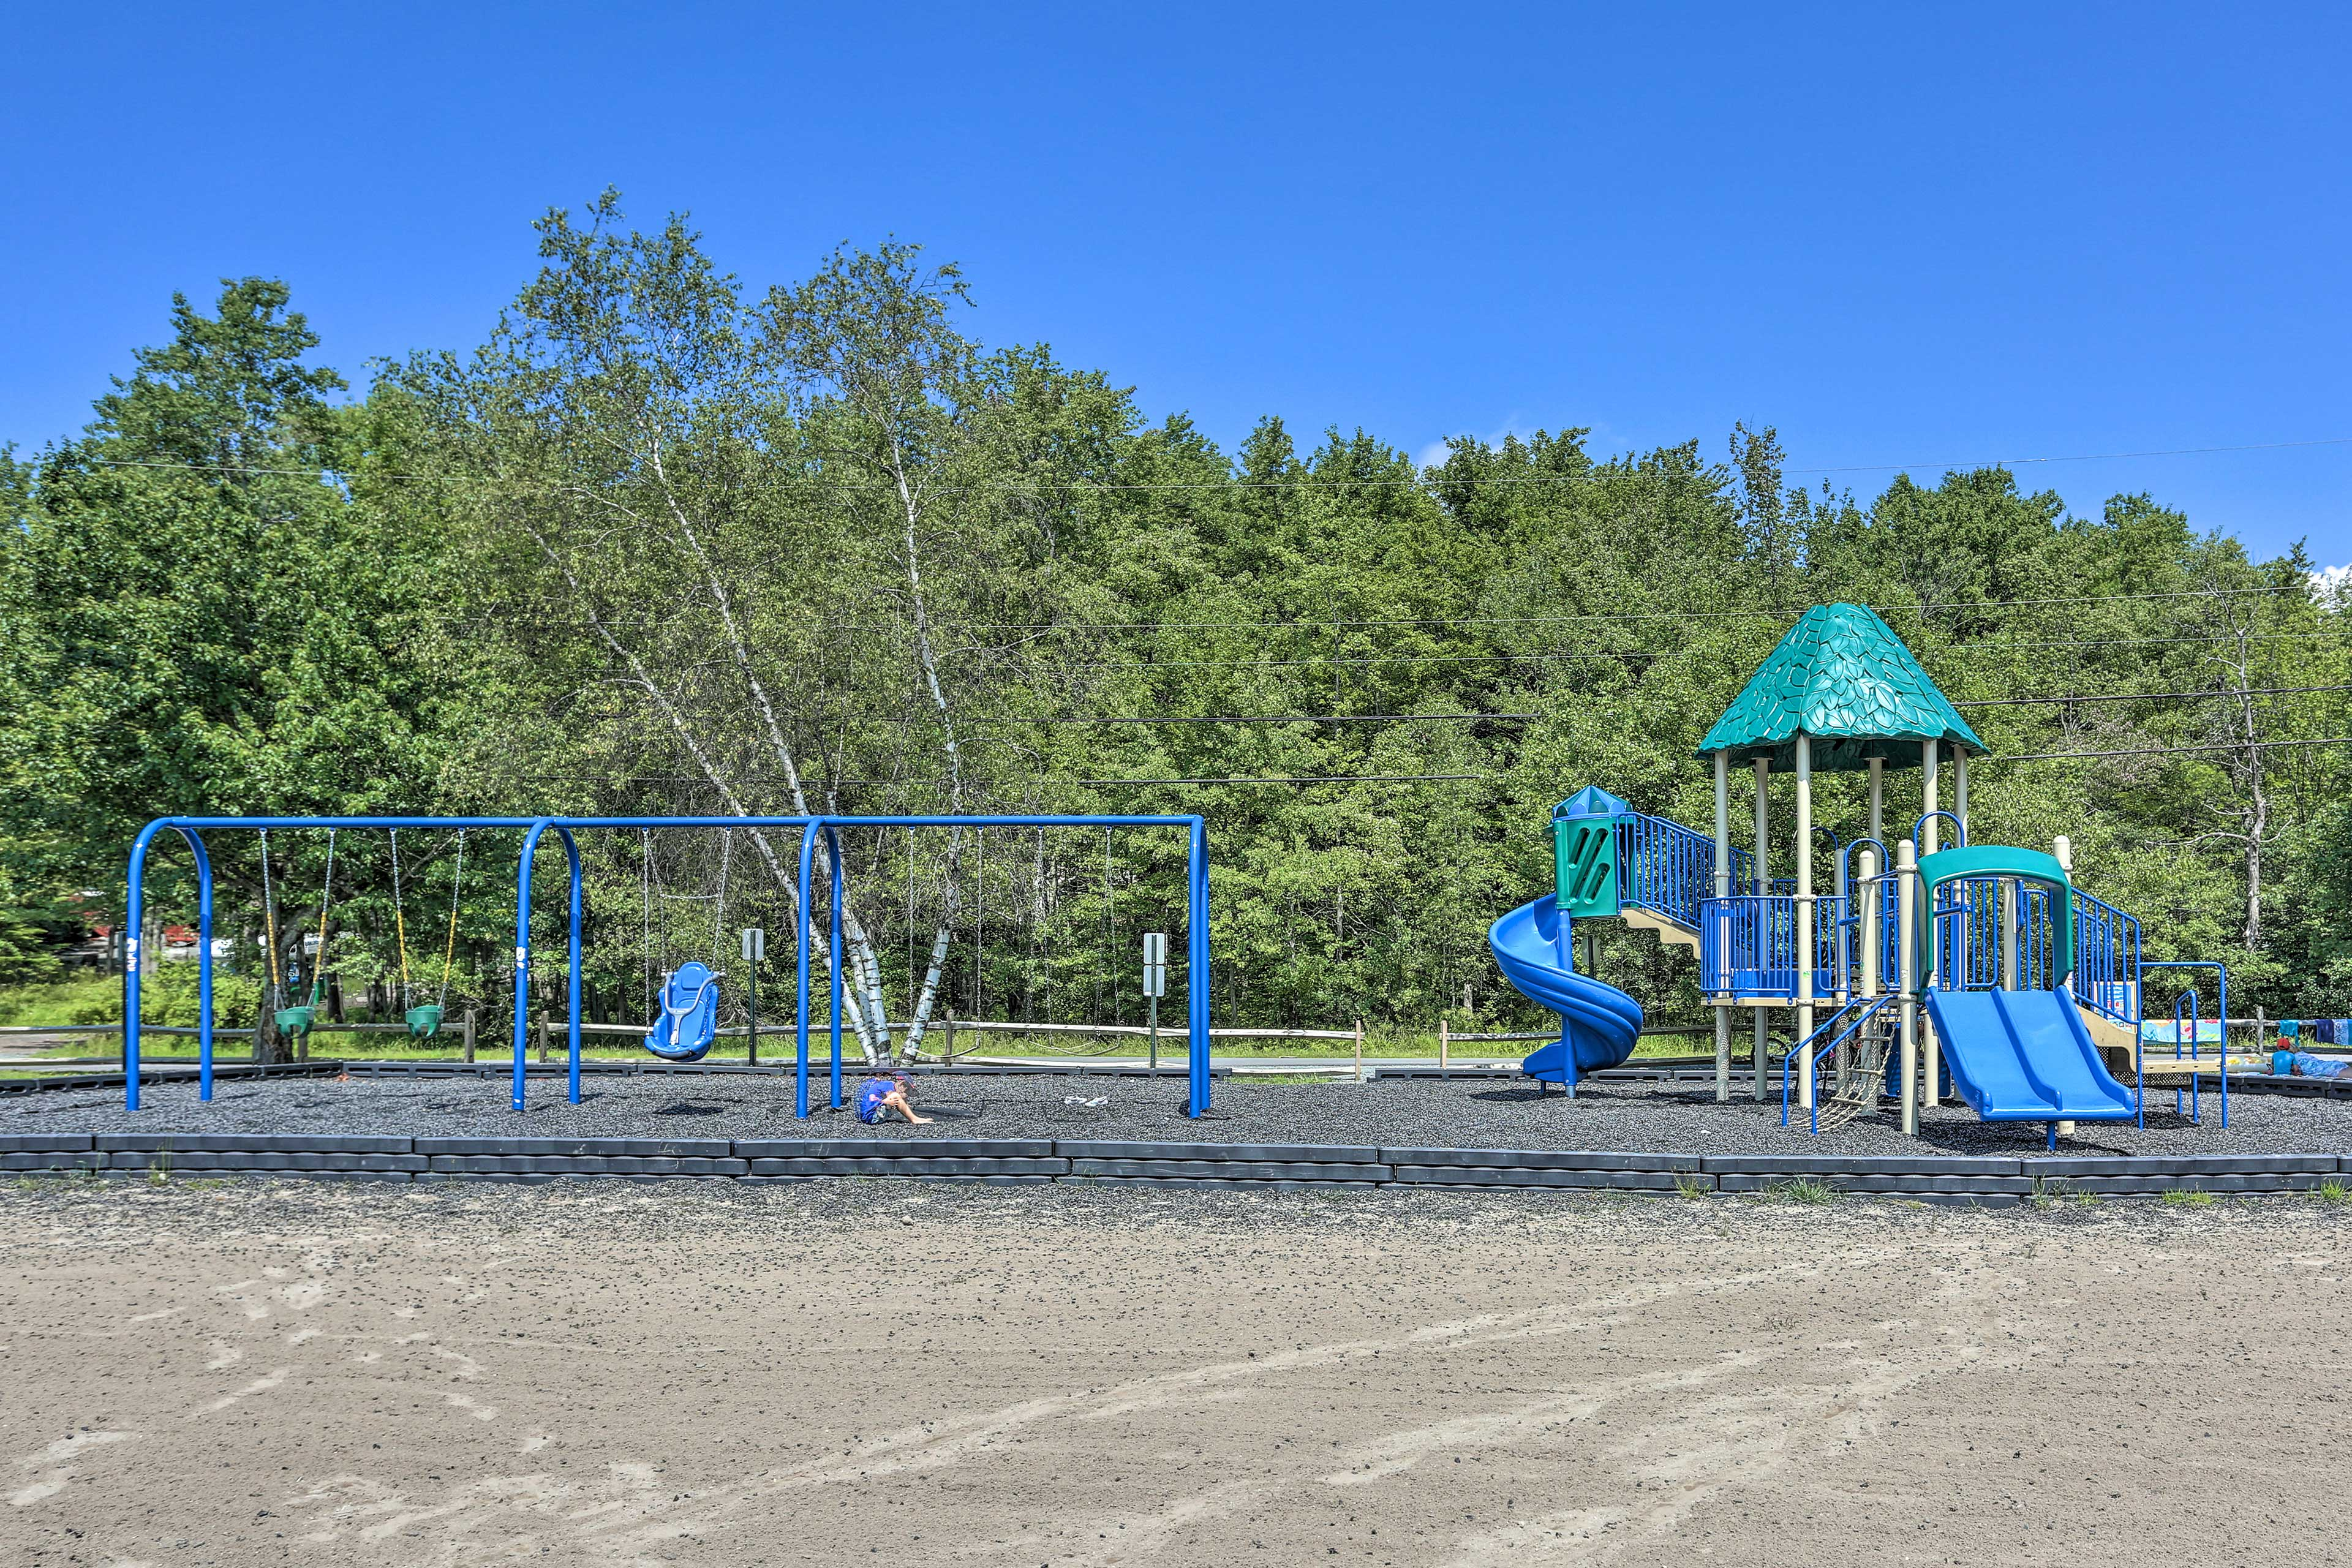 Take kids to one of the many playgrounds and park areas.